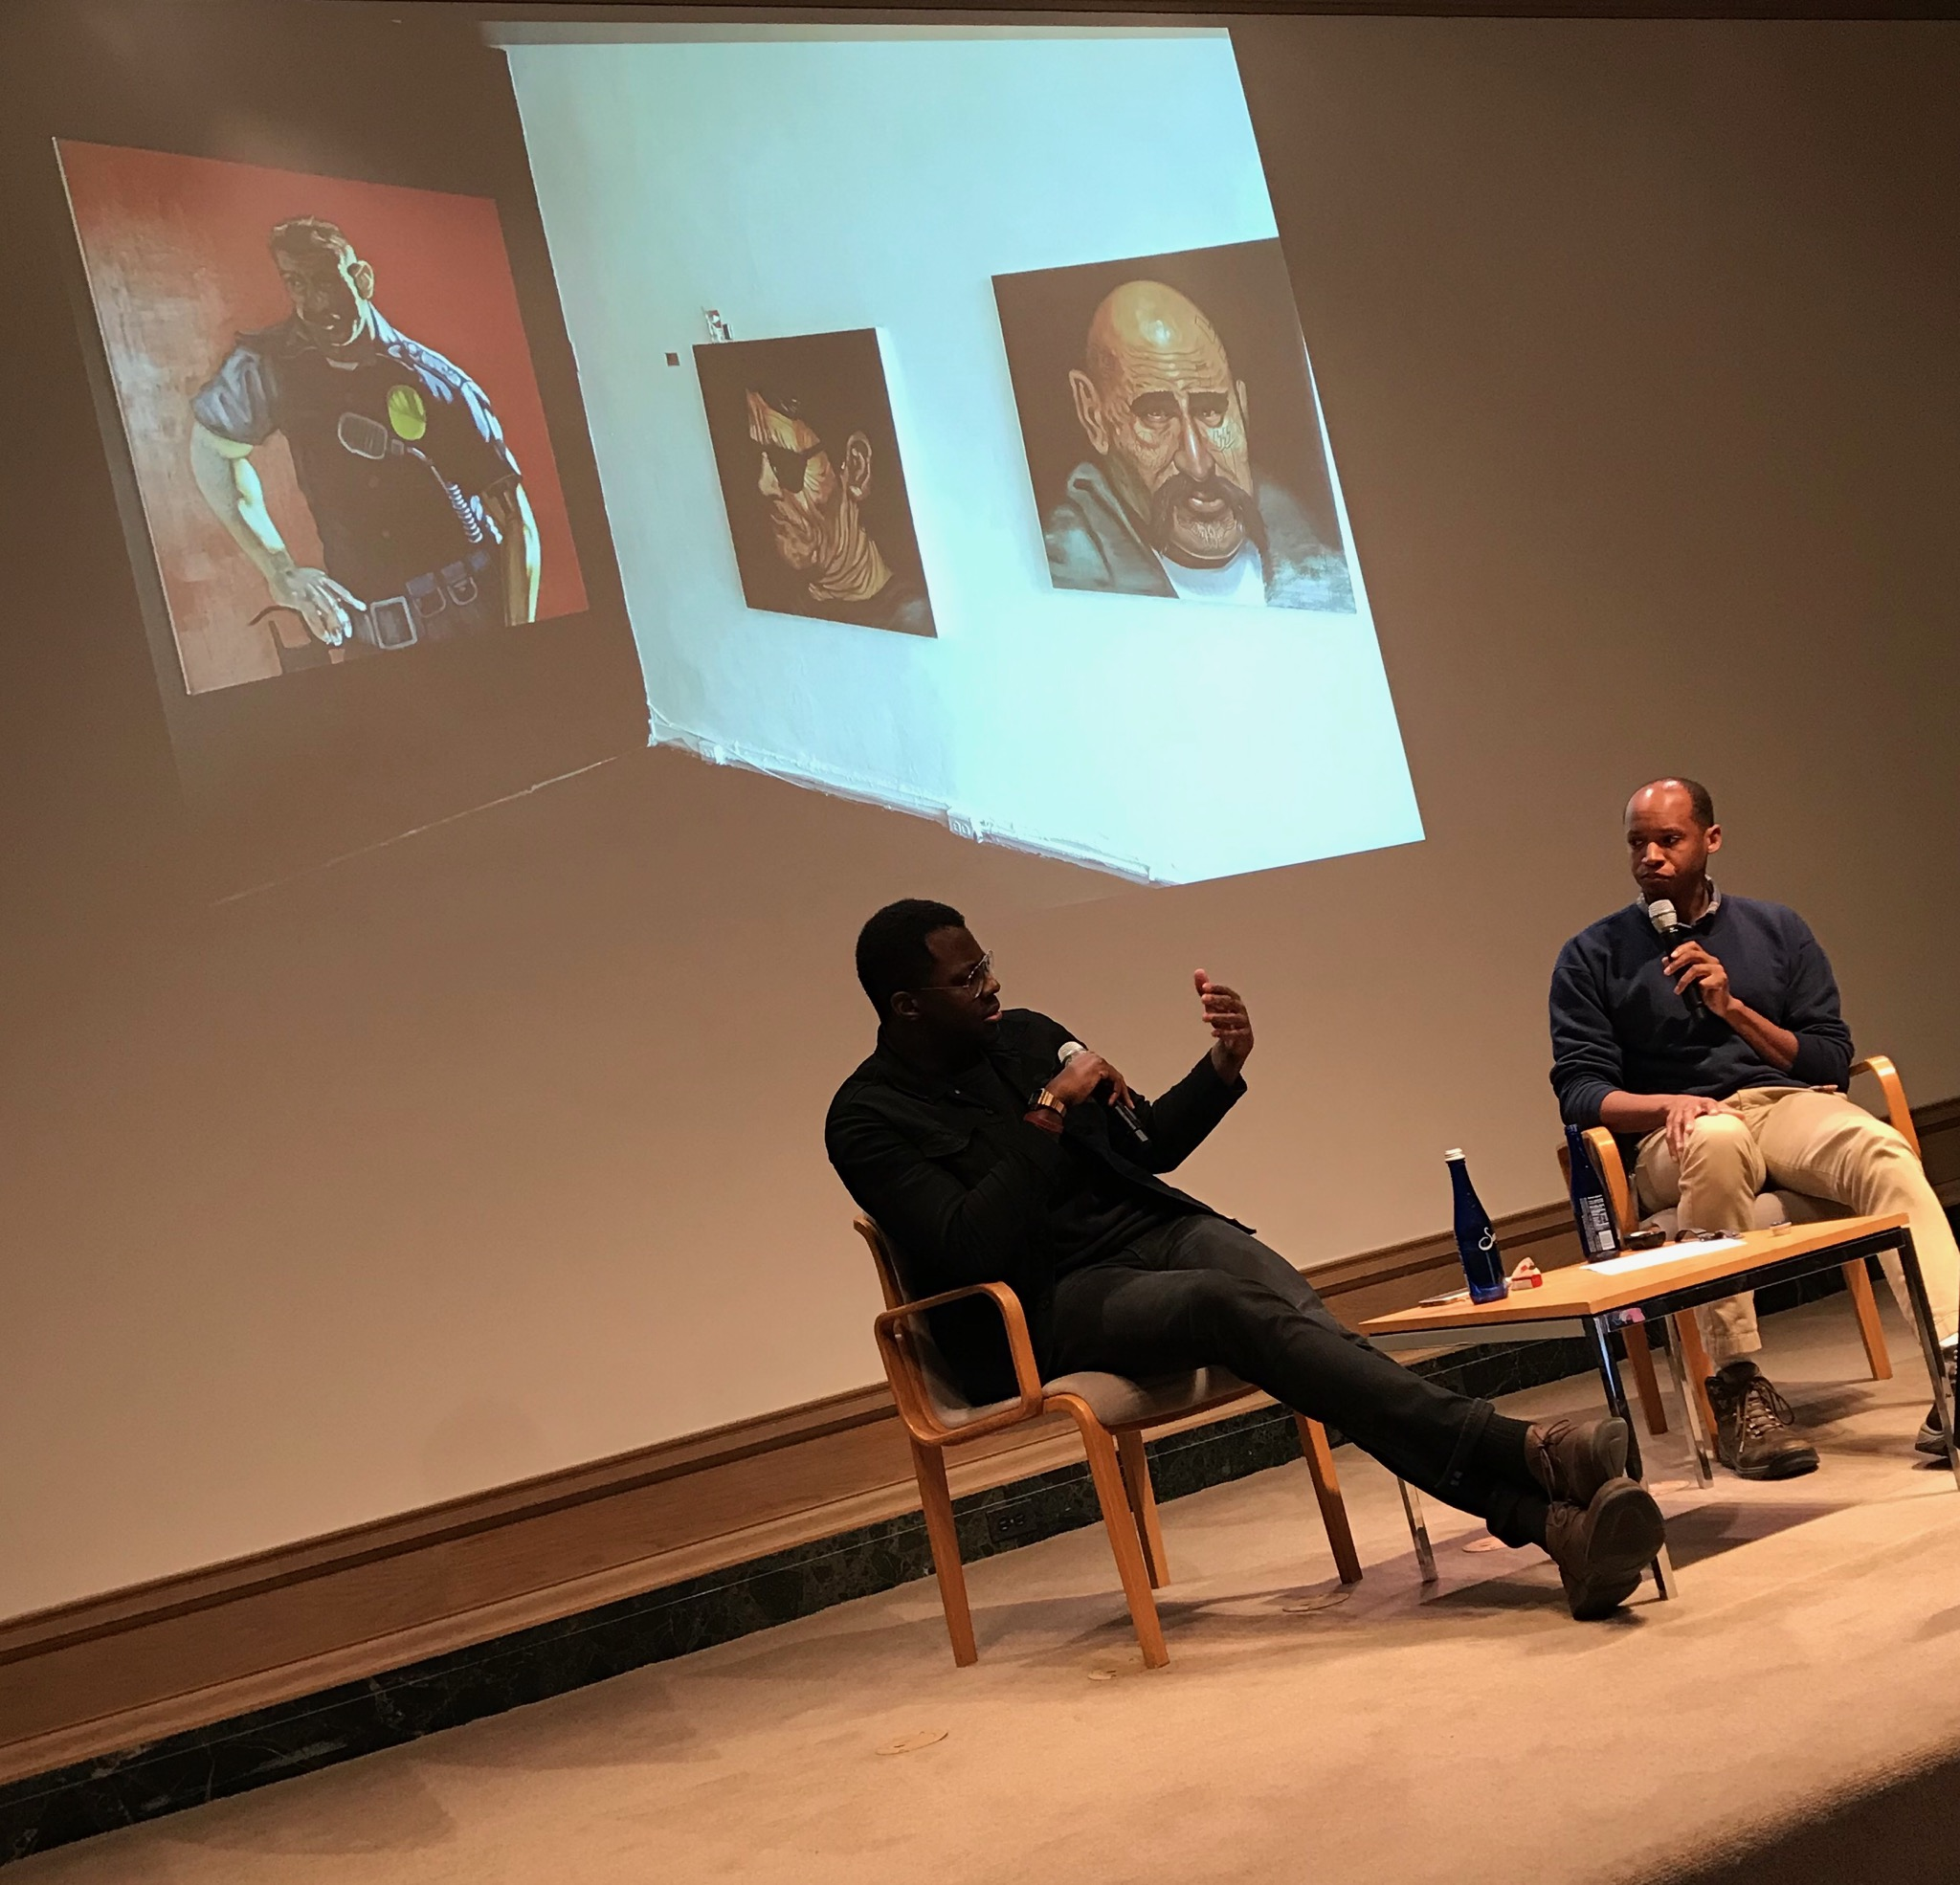 I See A Darkness  -  Works In Progress: Artist Talk  @ the National Gallery of Art, Washington DC, Feb 11, 2019. Moderated by Terence Washington